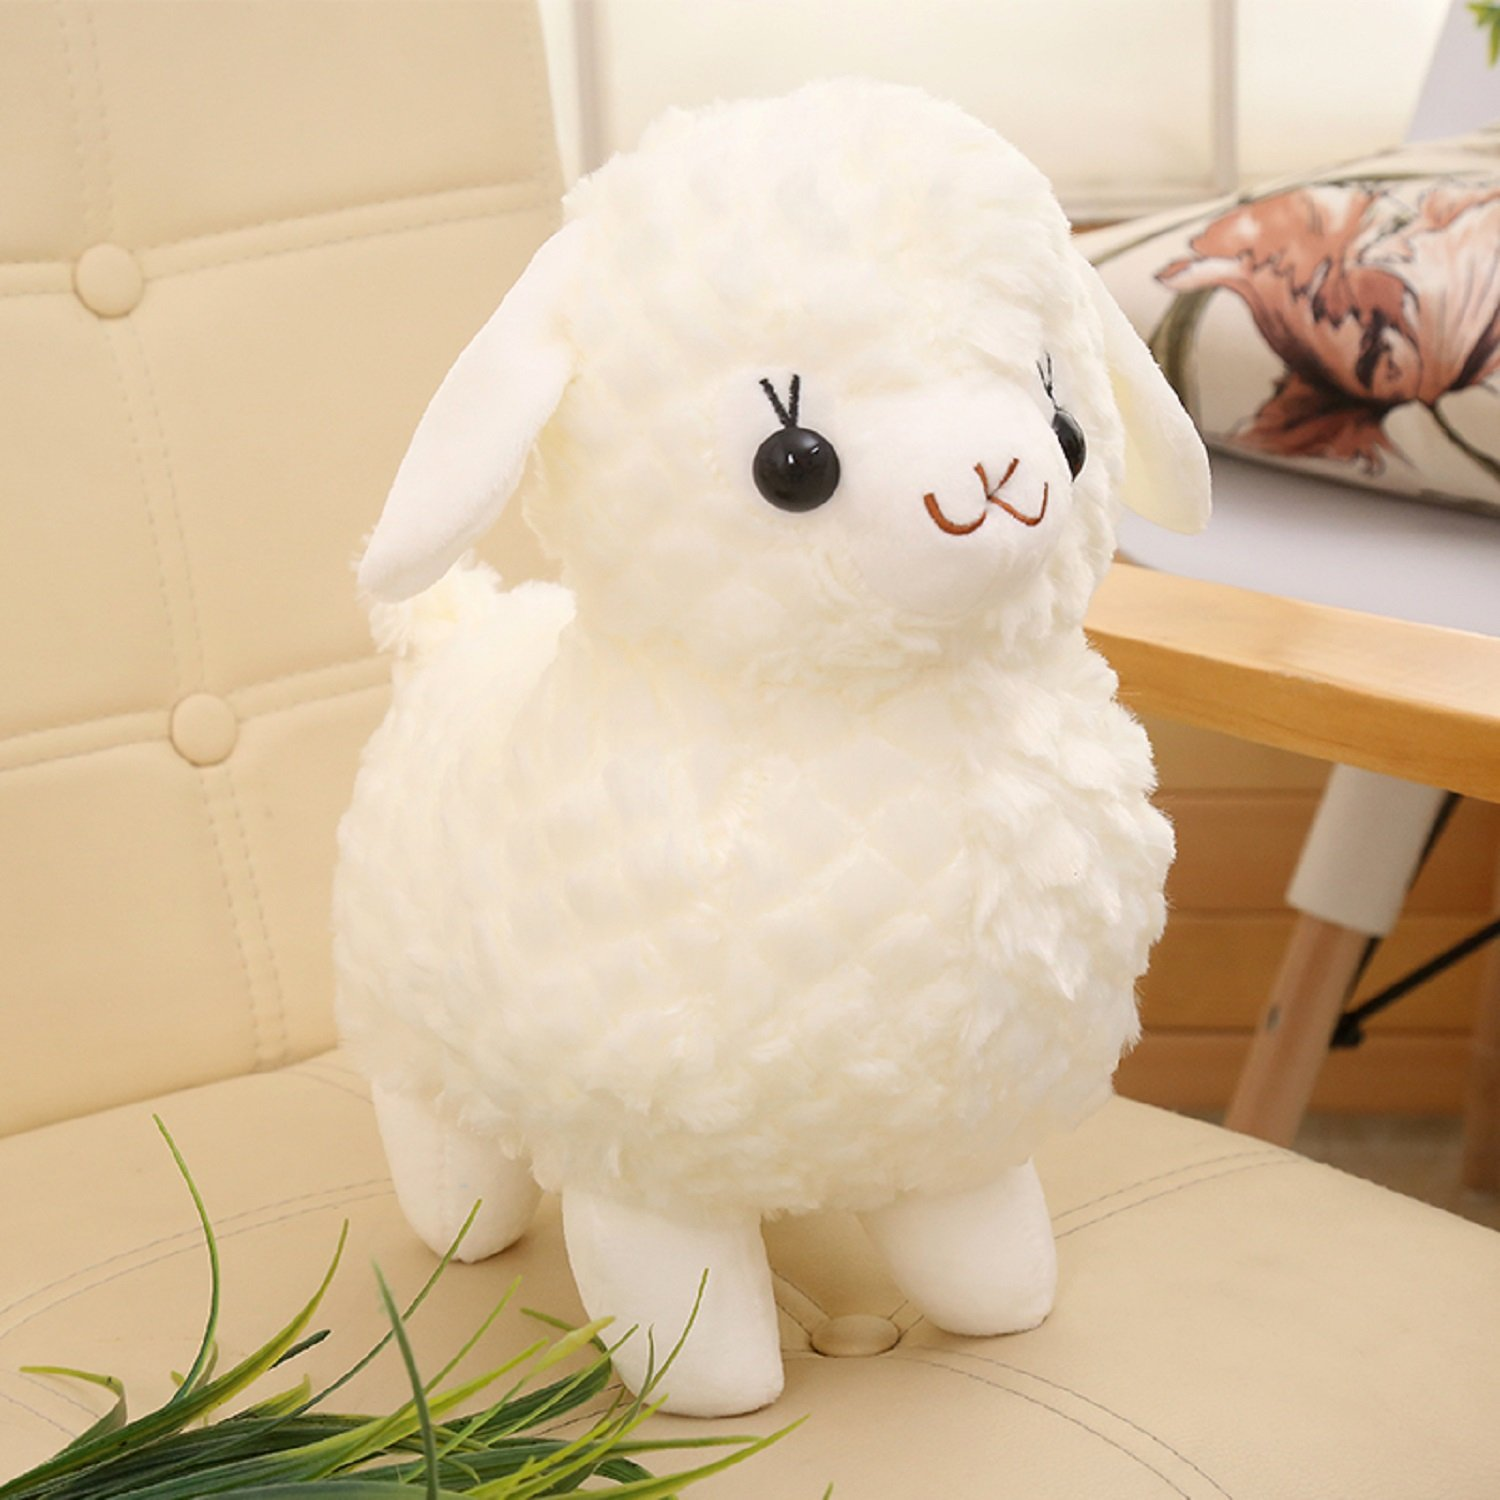 Plush Sheep Stuffed Animal Toys Cuddly Soft Dolls Gifts Home Office Decorations Snow White 12 Inches